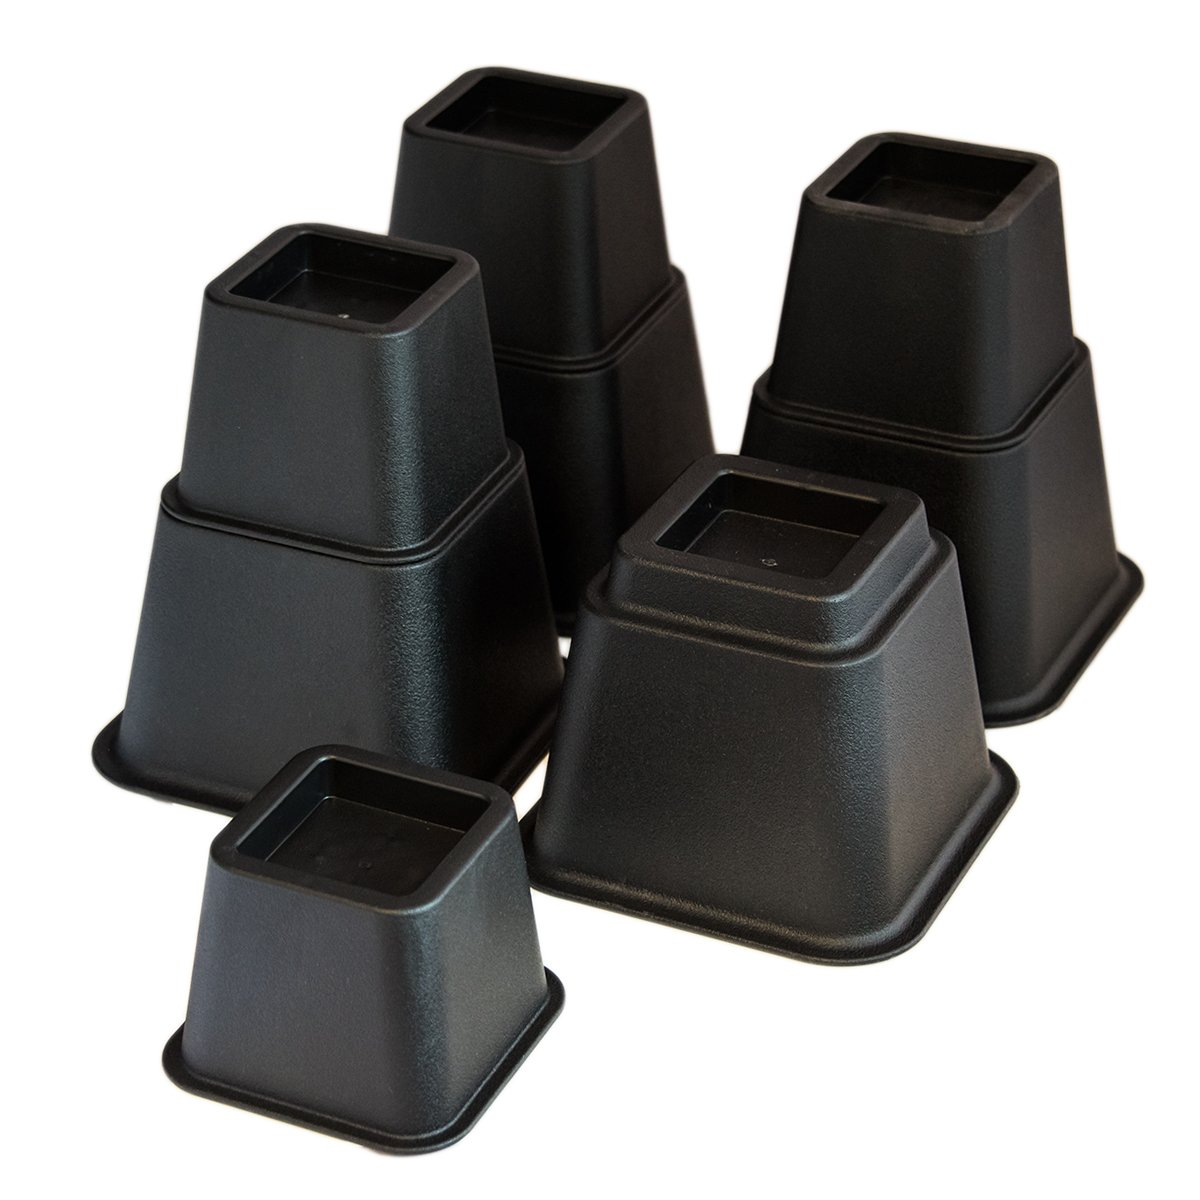 KCT 8 Piece Black Plastic Stackable Bed Furniture Riser